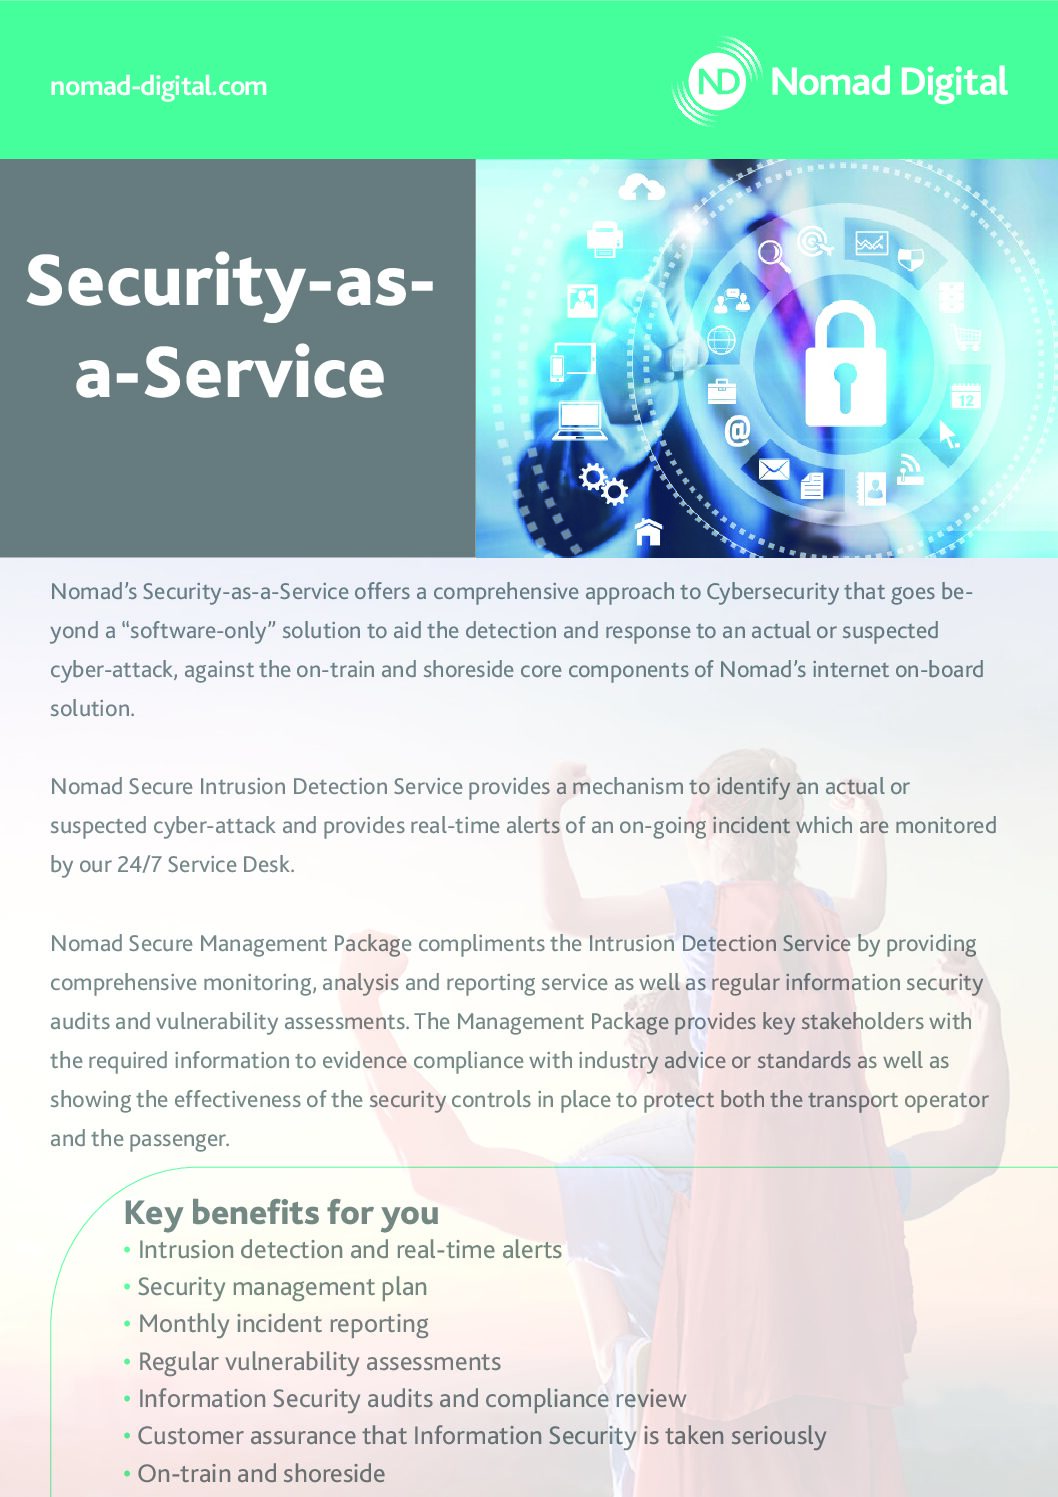 CCTV and Security-as-a-Service